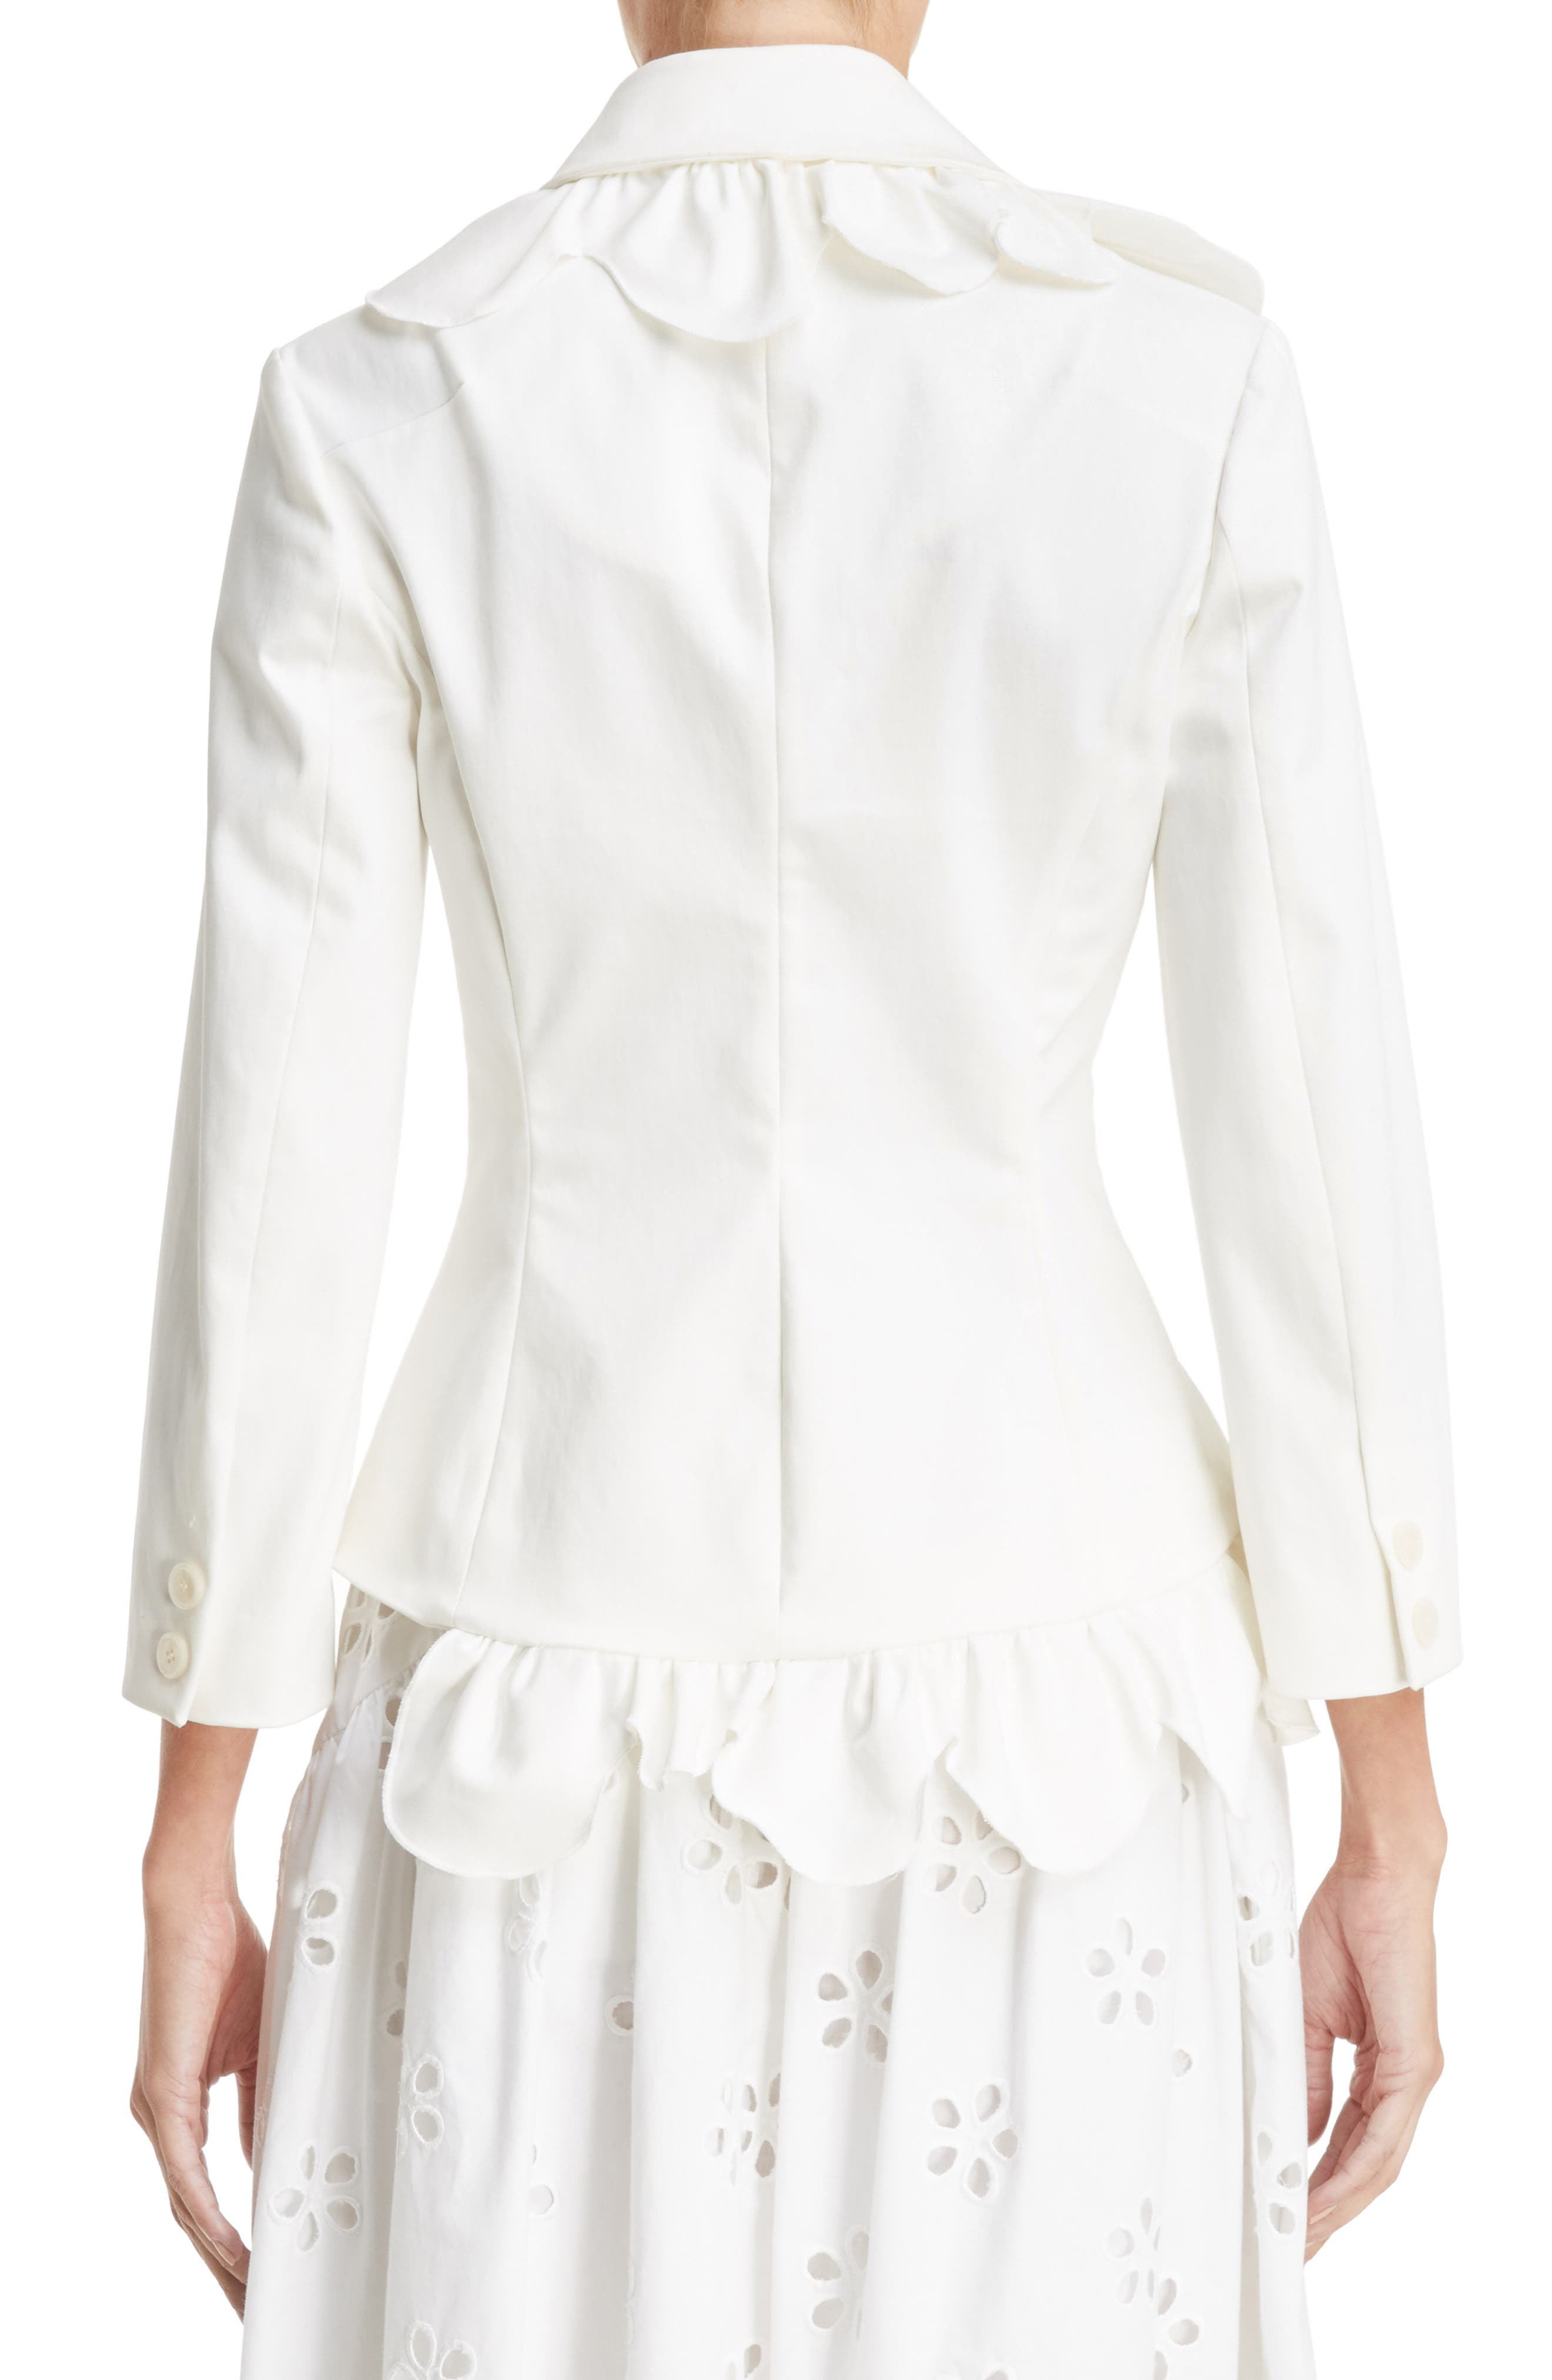 Scallop Frill Fitted Jacket,                             Alternate thumbnail 4, color,